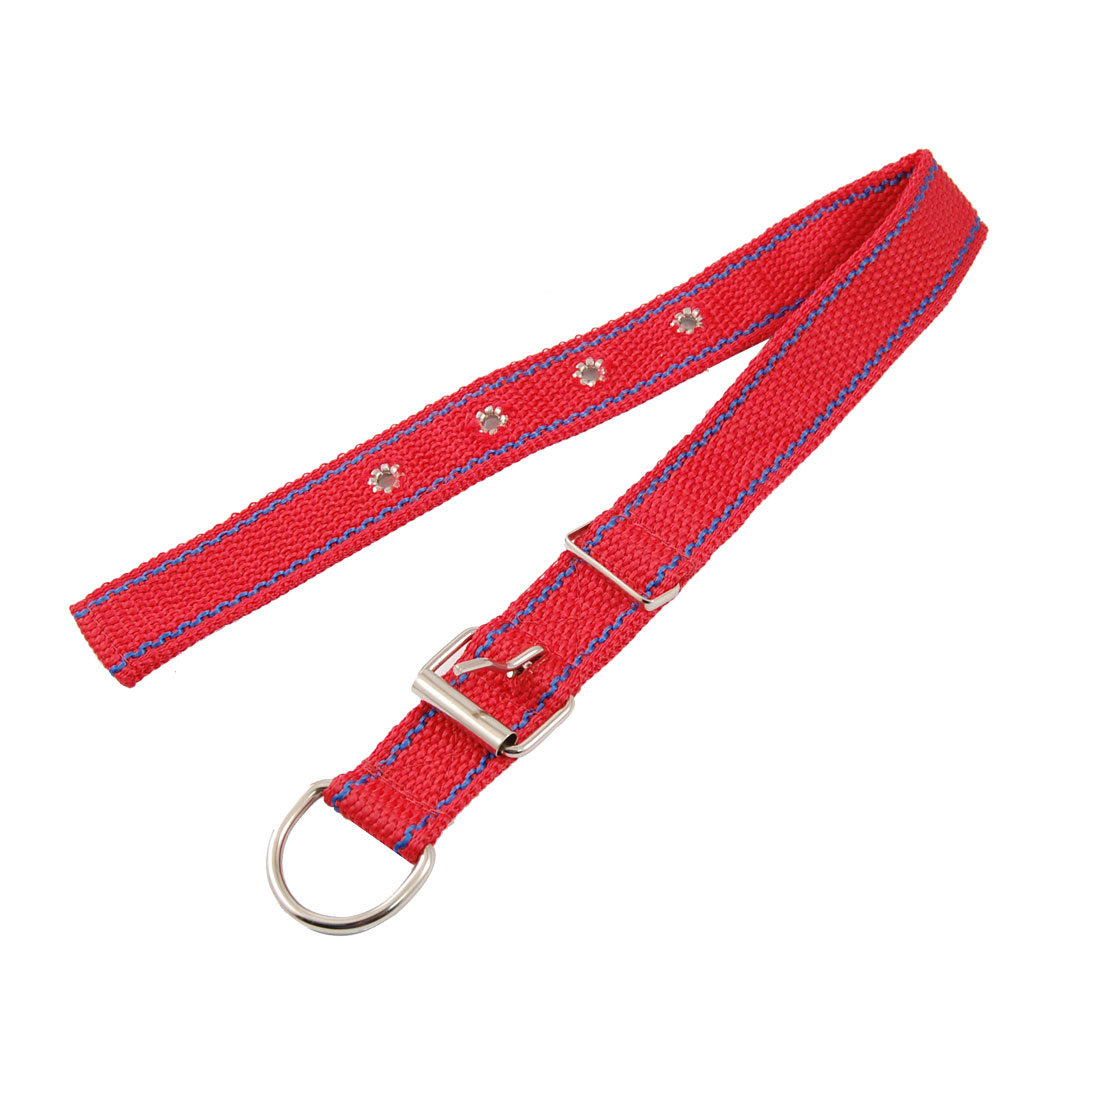 Single Prong Buckle Red Nylon Fabric Leash Adjustable Collar for Pet Dog